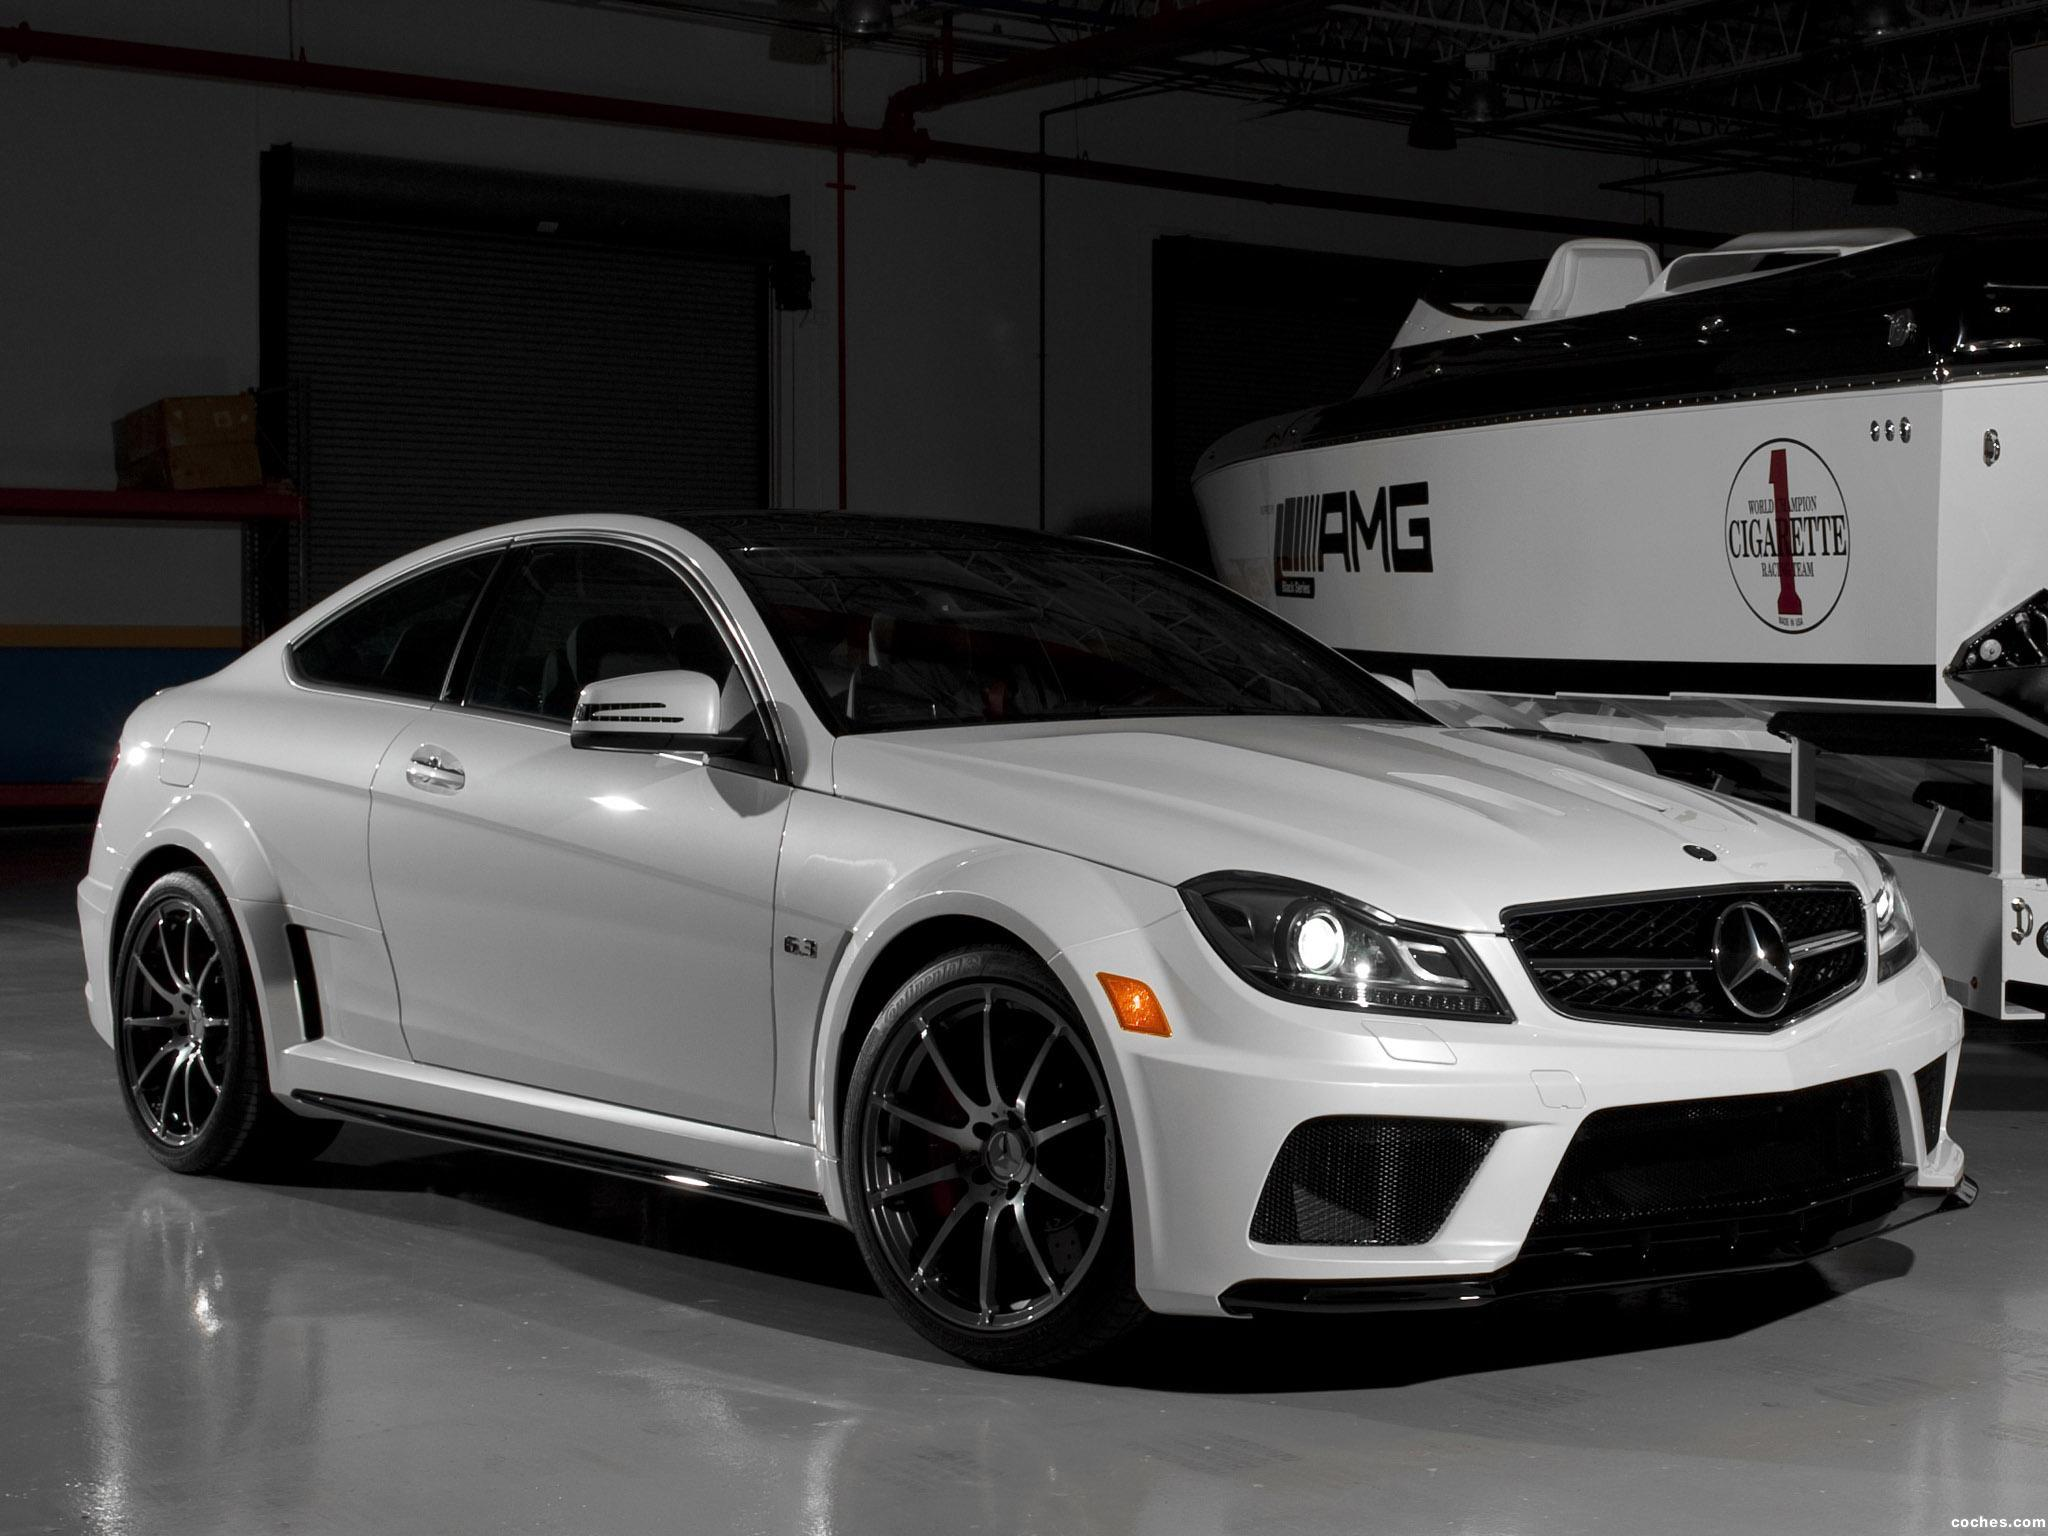 Fotos de mercedes clase c amg c63 black series coupe usa 2012 - 2012 mercedes c63 amg coupe ...